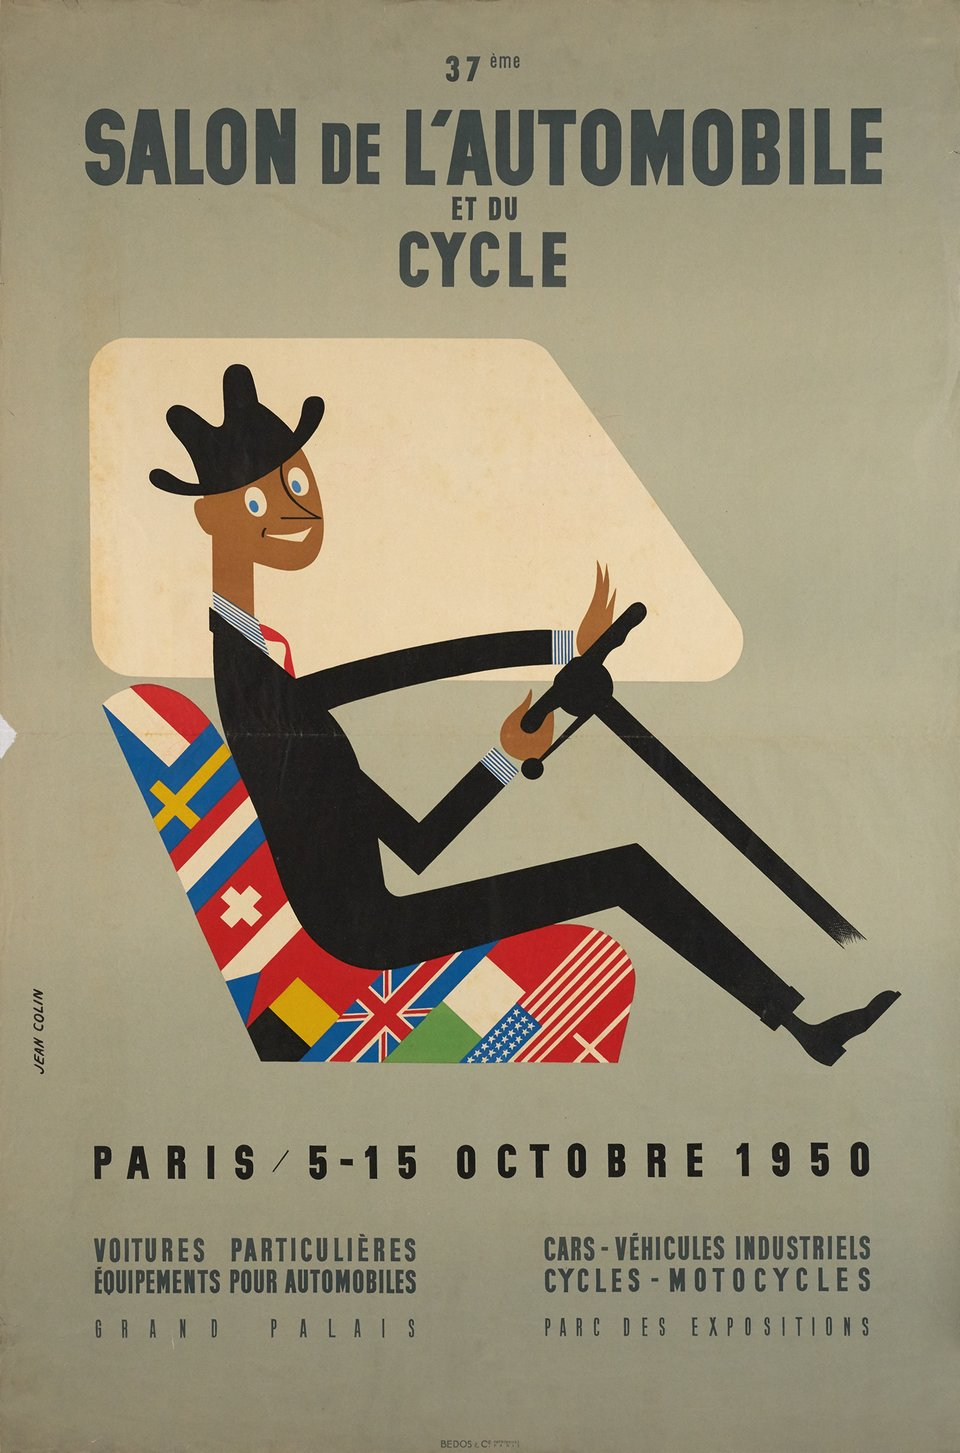 37ème Salon de l'Automobile et du Cycle, Paris – Vintage poster – Jean COLIN – 1950